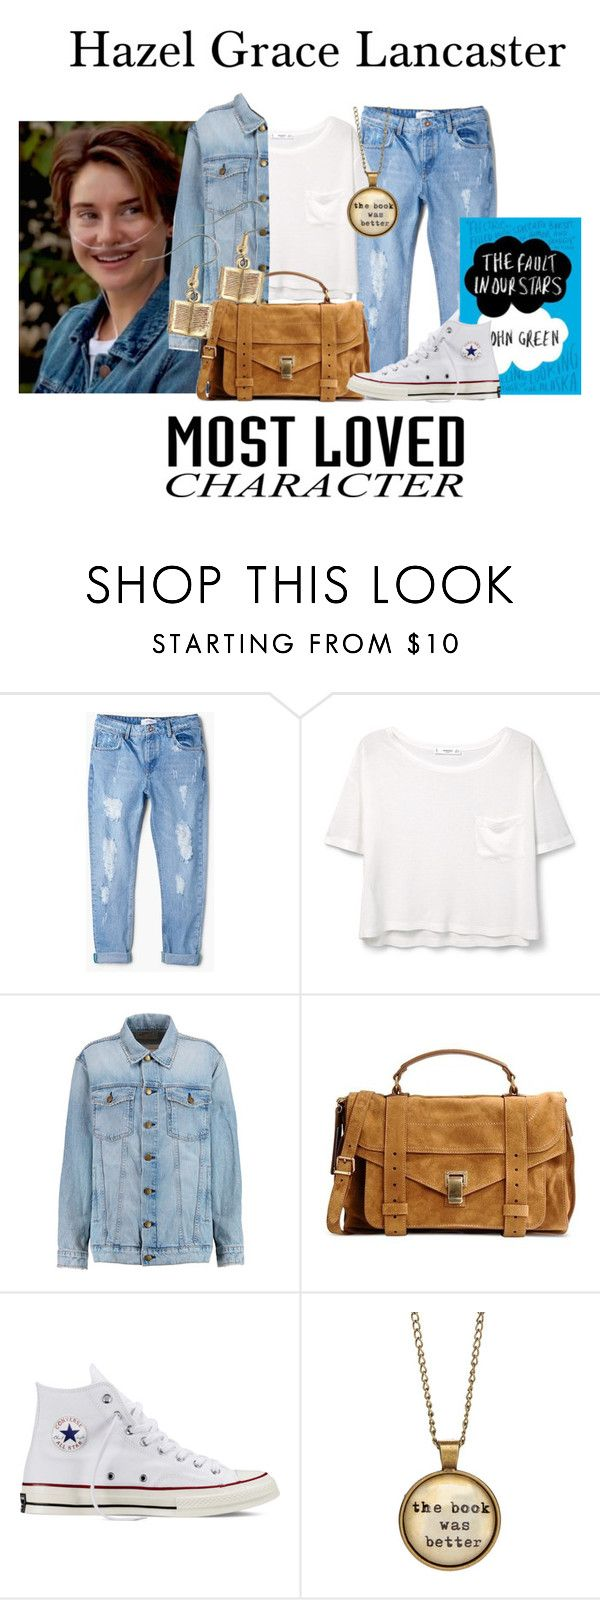 """Hazel Grace Lancaster / 3-7-16"" by megan-vanwinkle ❤ liked on Polyvore featuring MANGO, Current/Elliott, Proenza Schouler, Converse, thefaultinourstars and polyvoreeditorial"